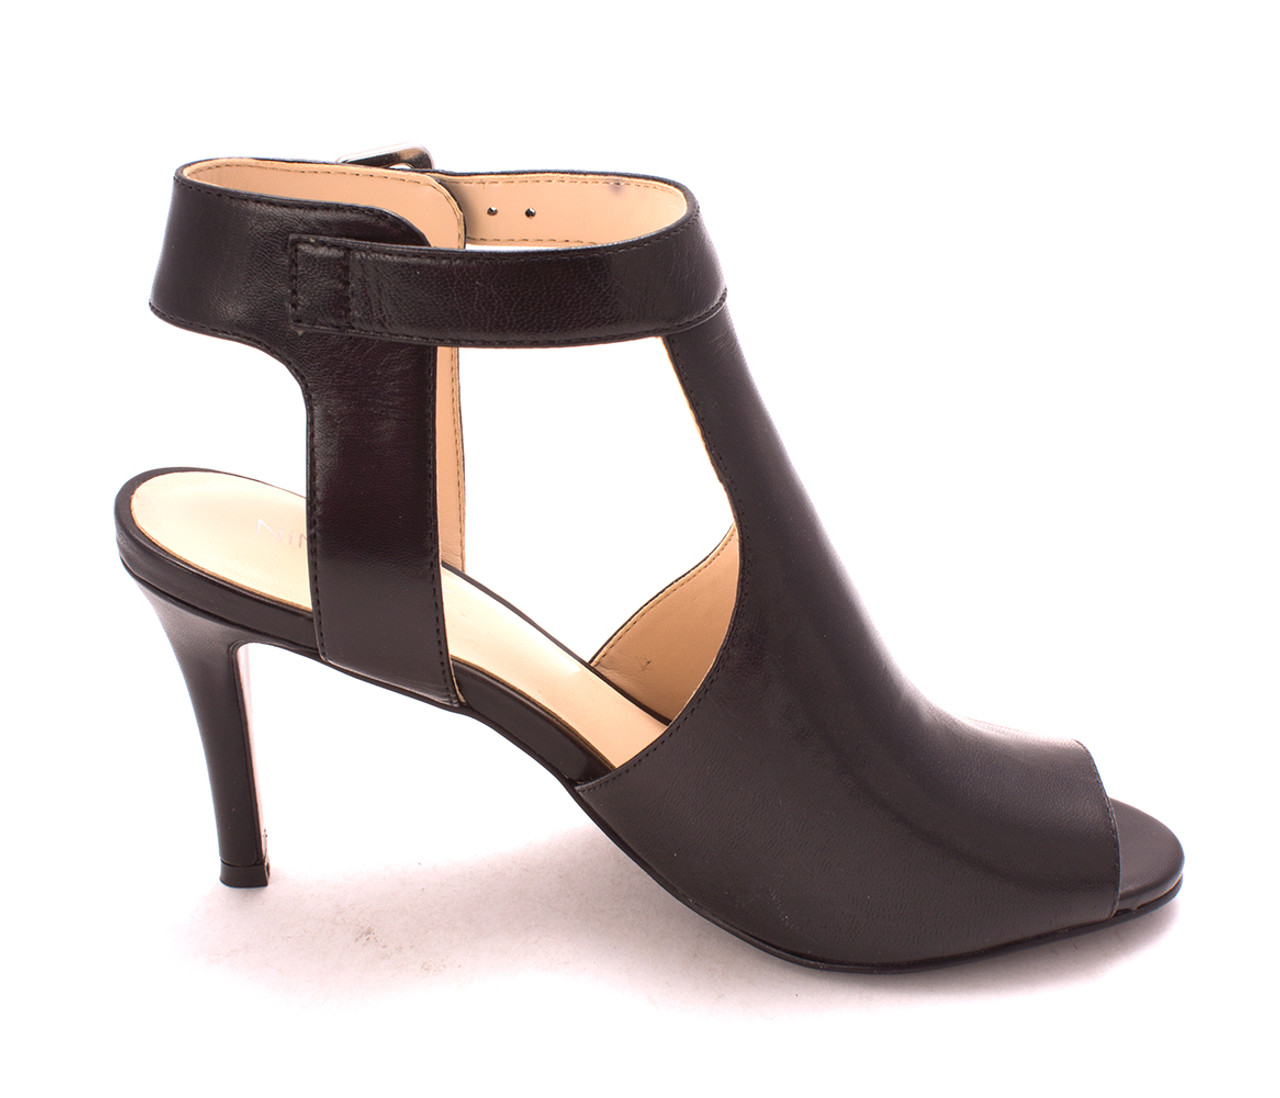 58b5f9c52d Bandolino Womens infusion Leather Peep Toe Casual Slingback  Sandals~pp-555bcfcd ...